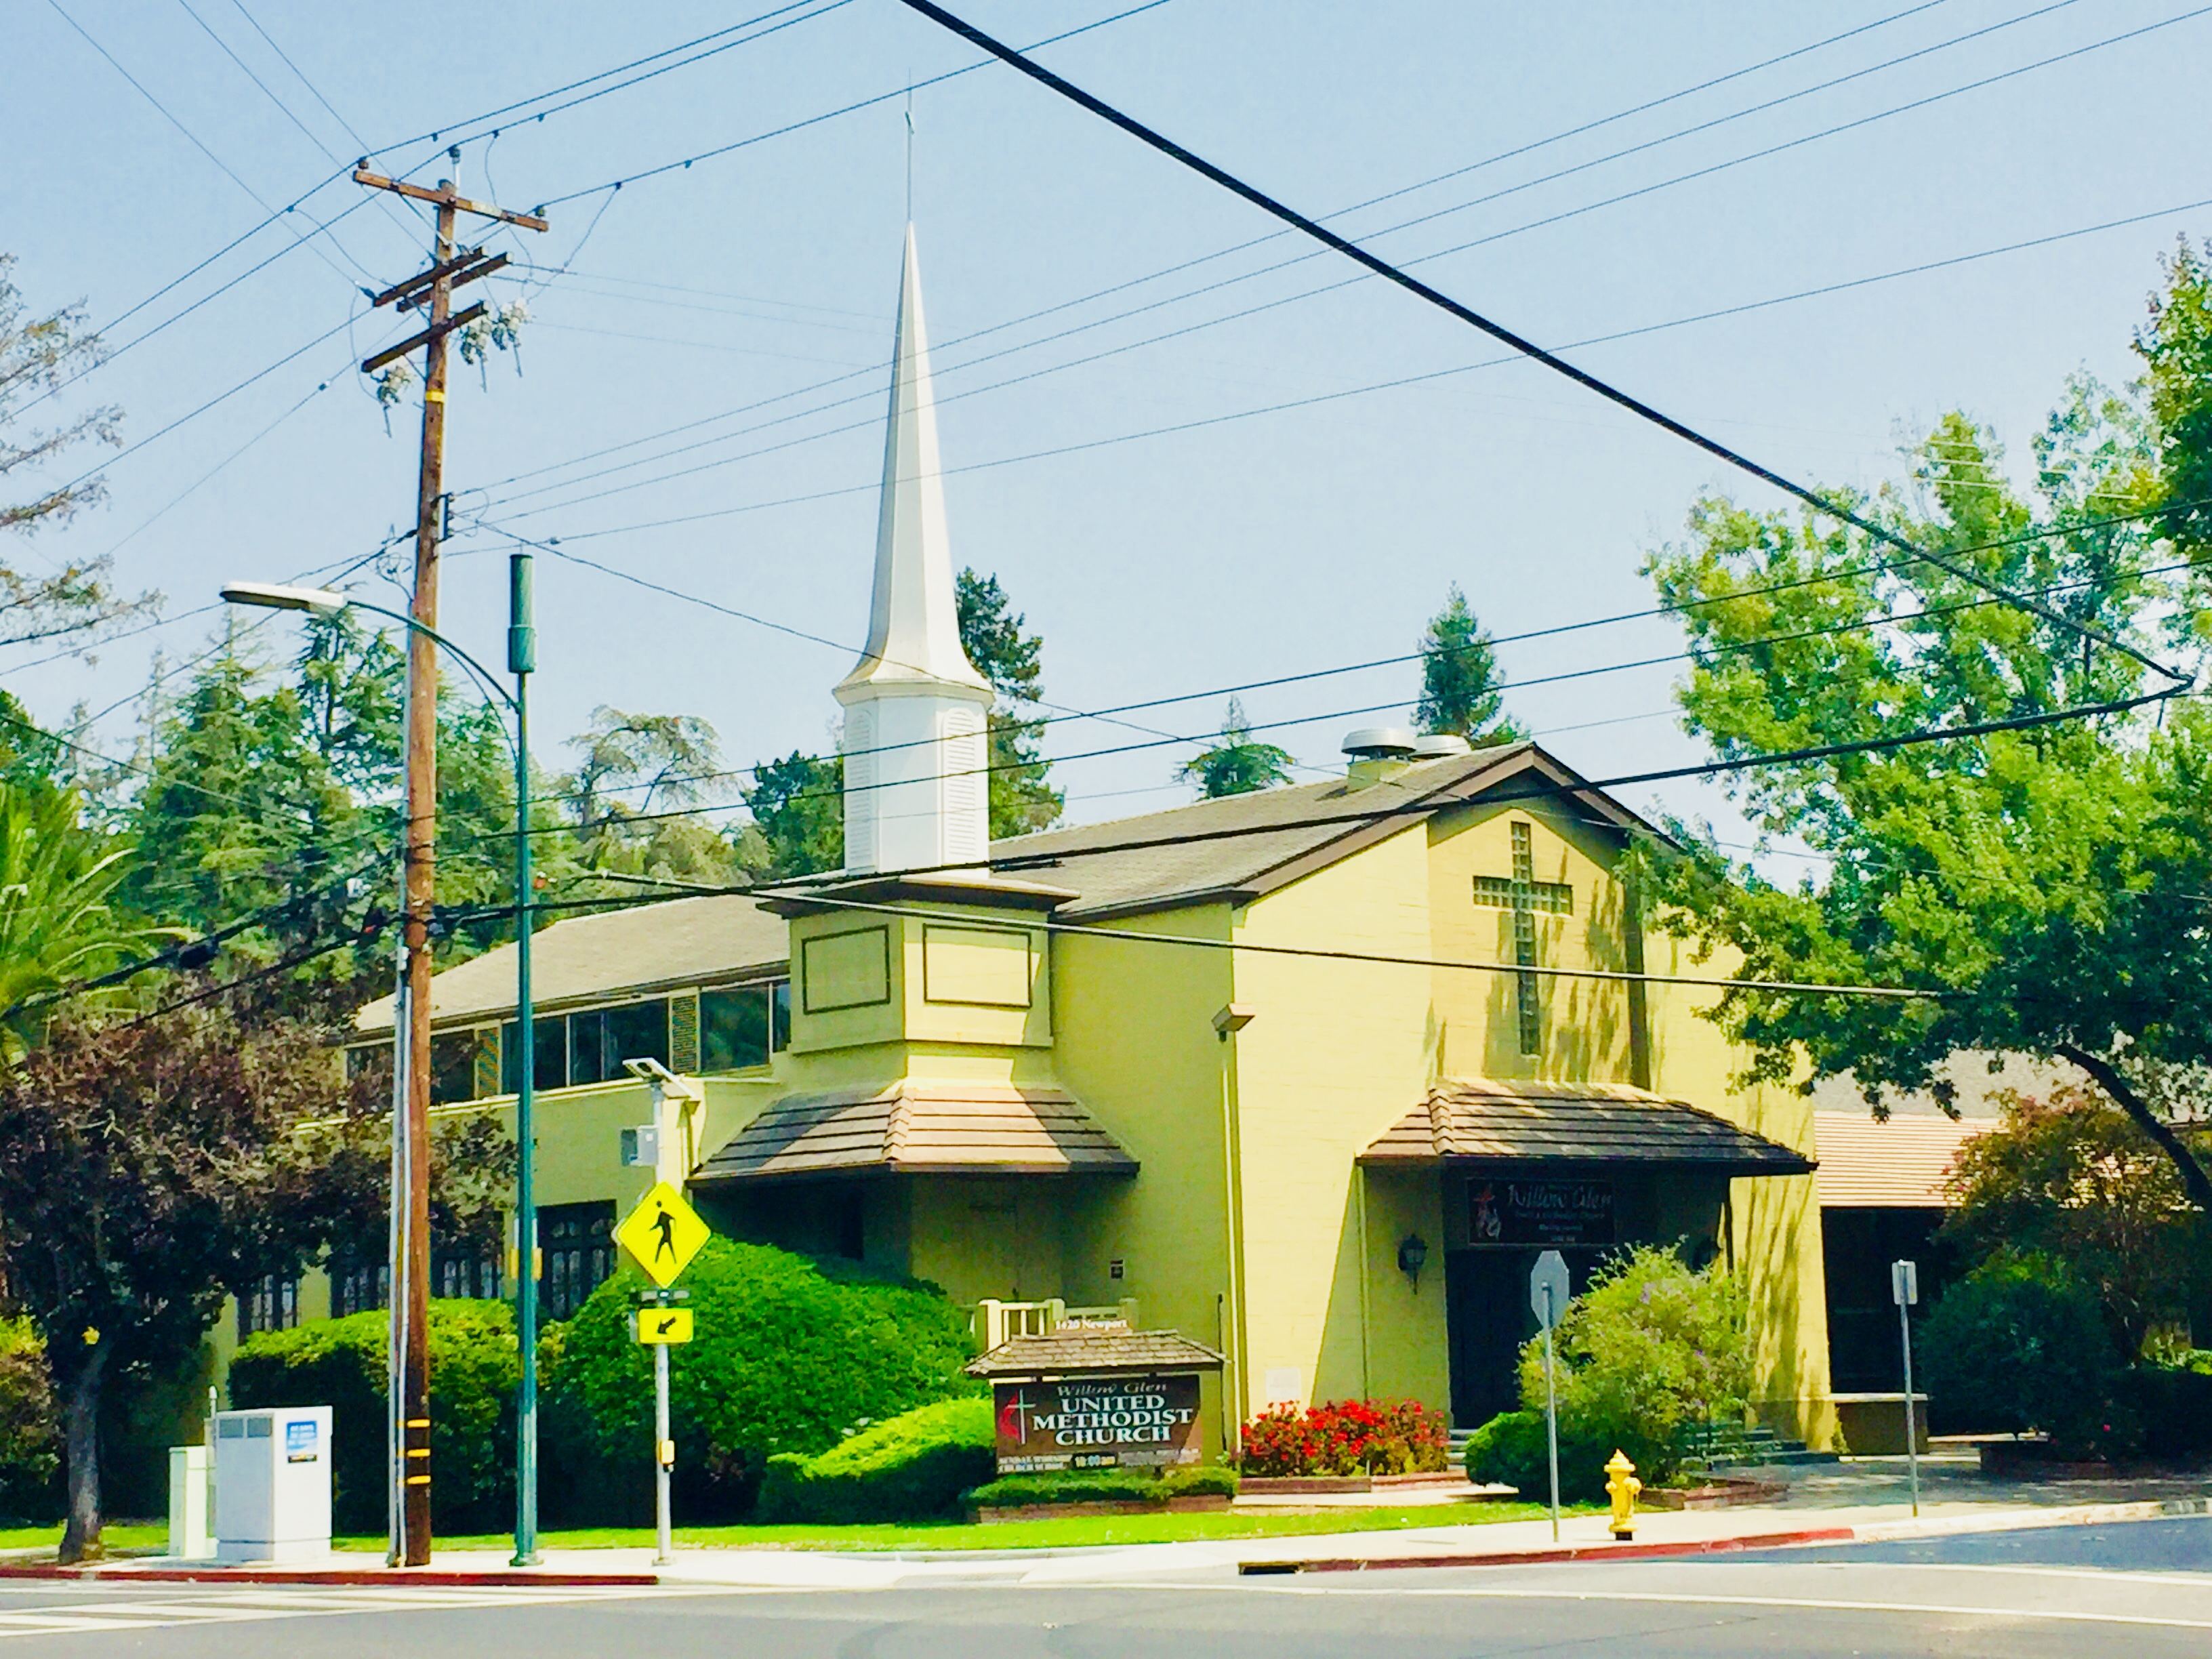 Willow Glen United Methodist Church